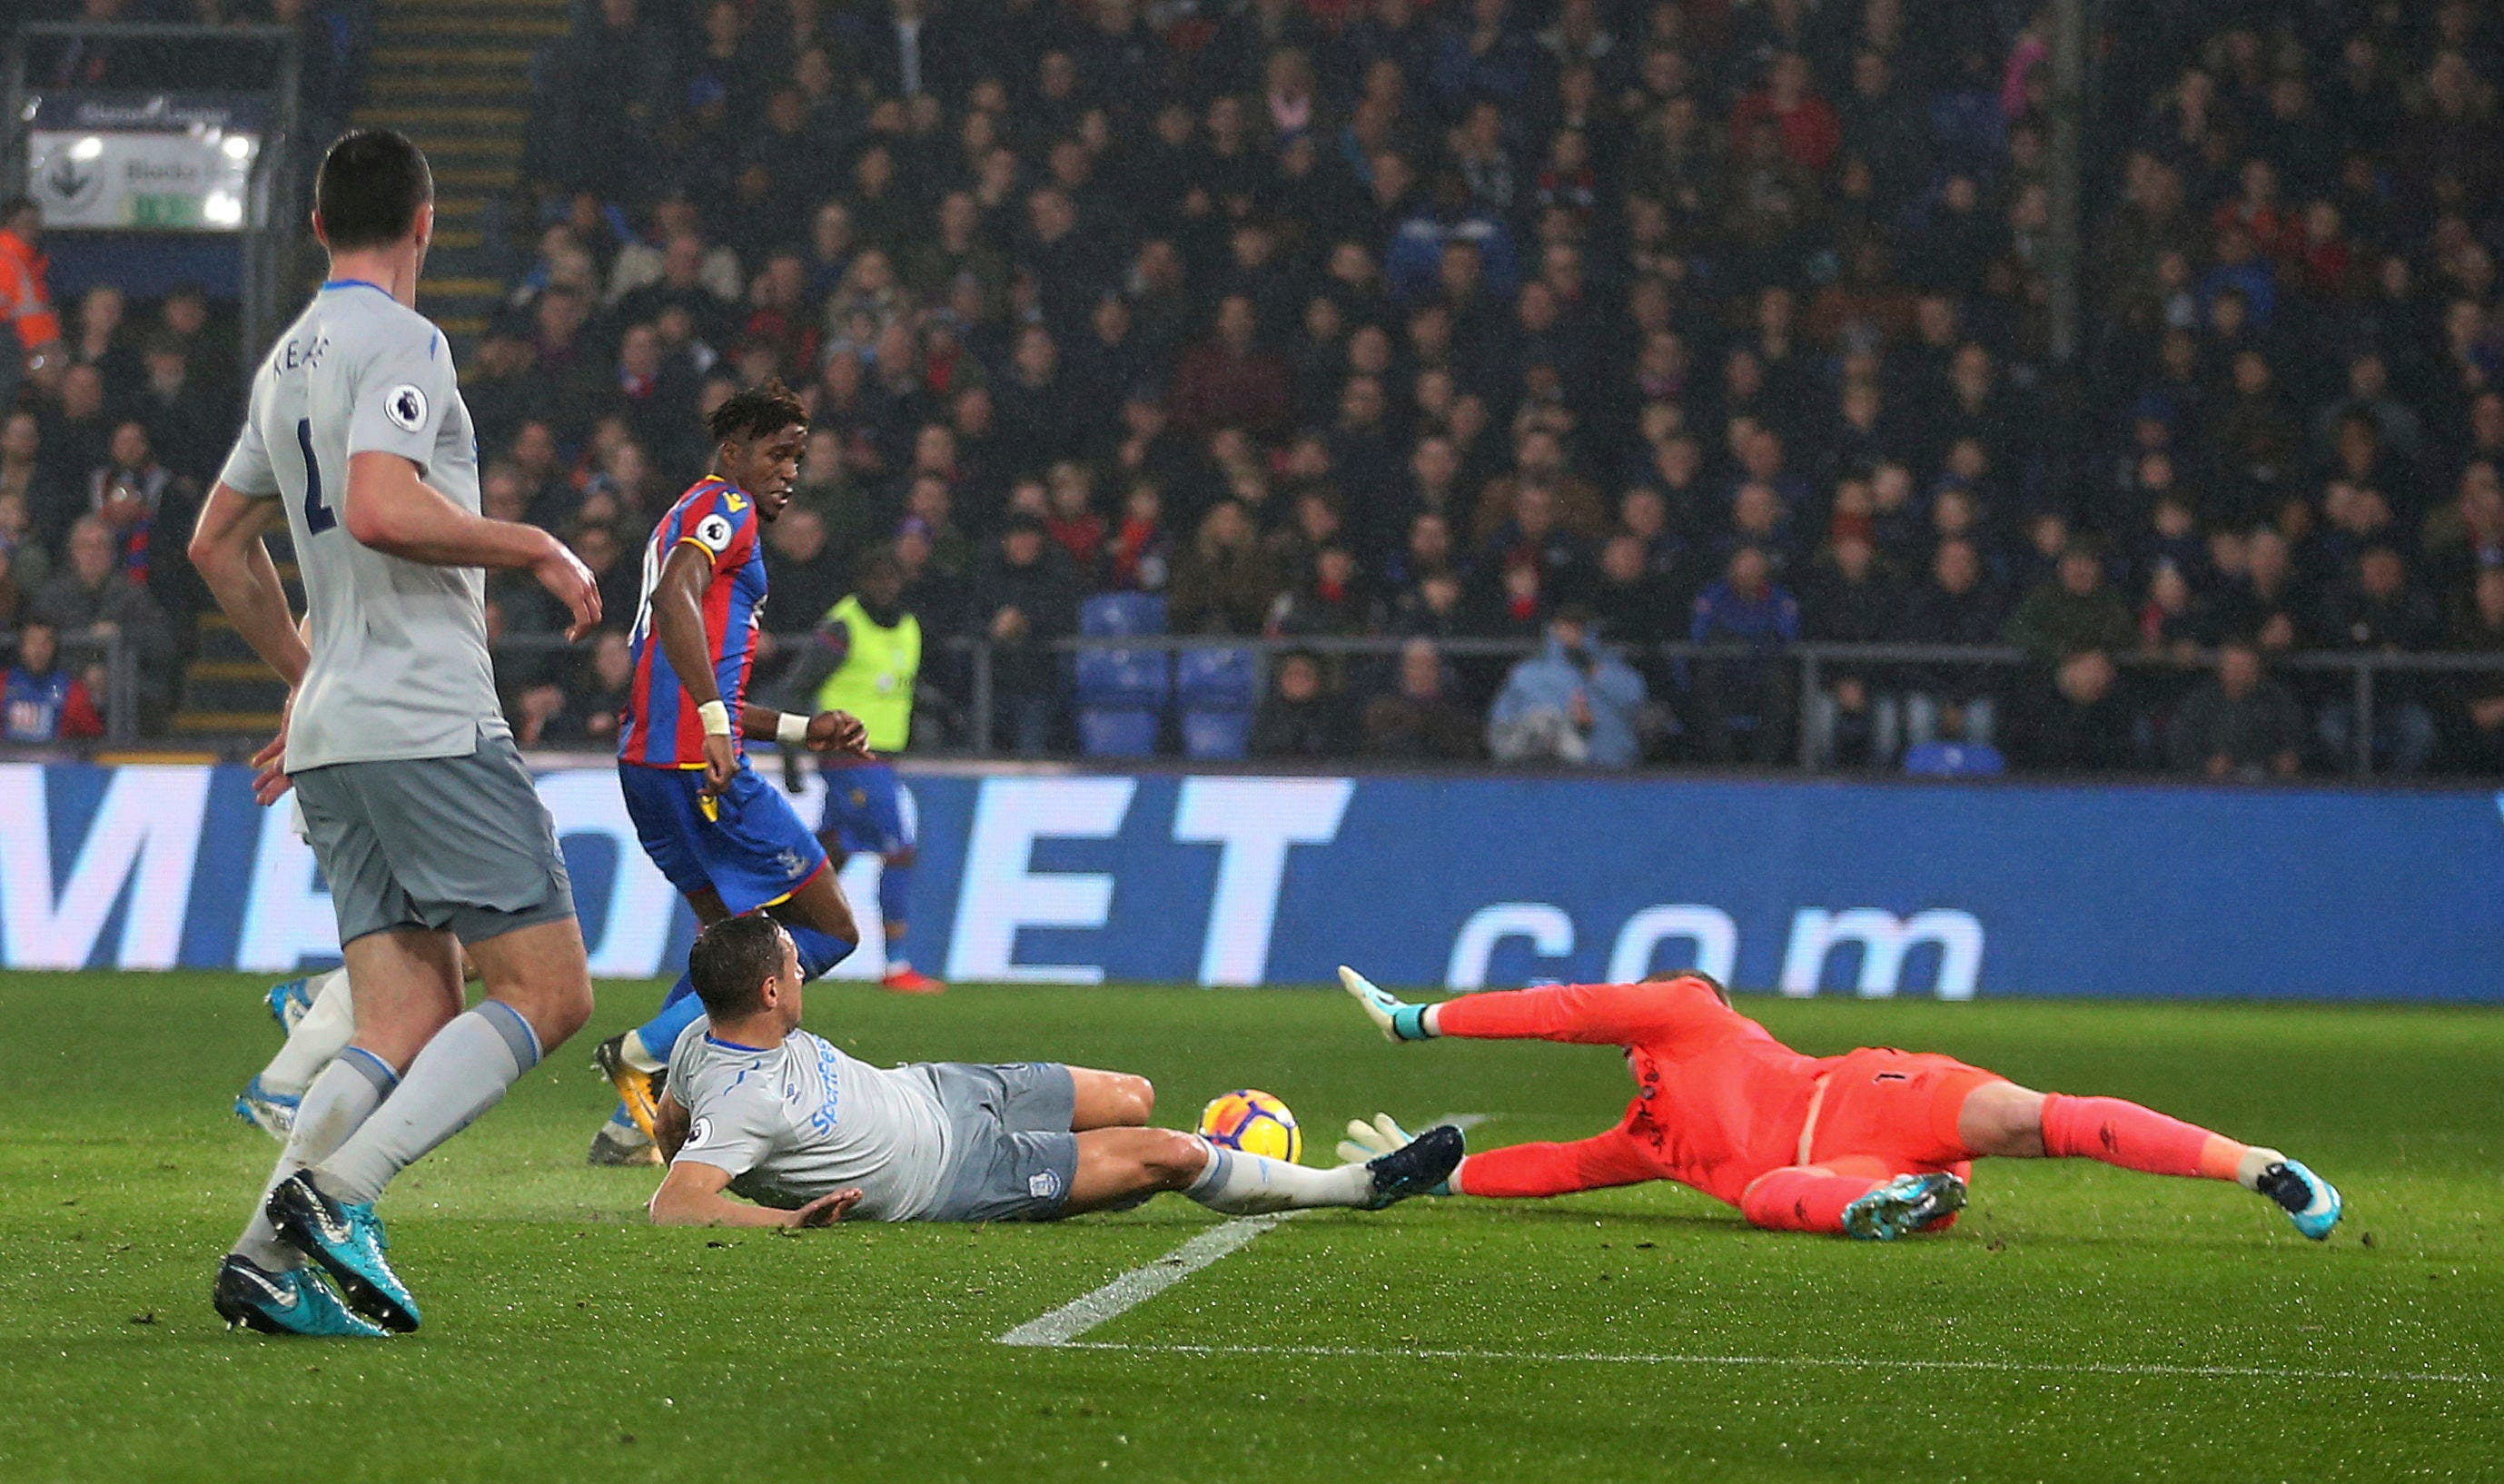 Everton fights back to draw 2-2 at last-place Crystal Palace